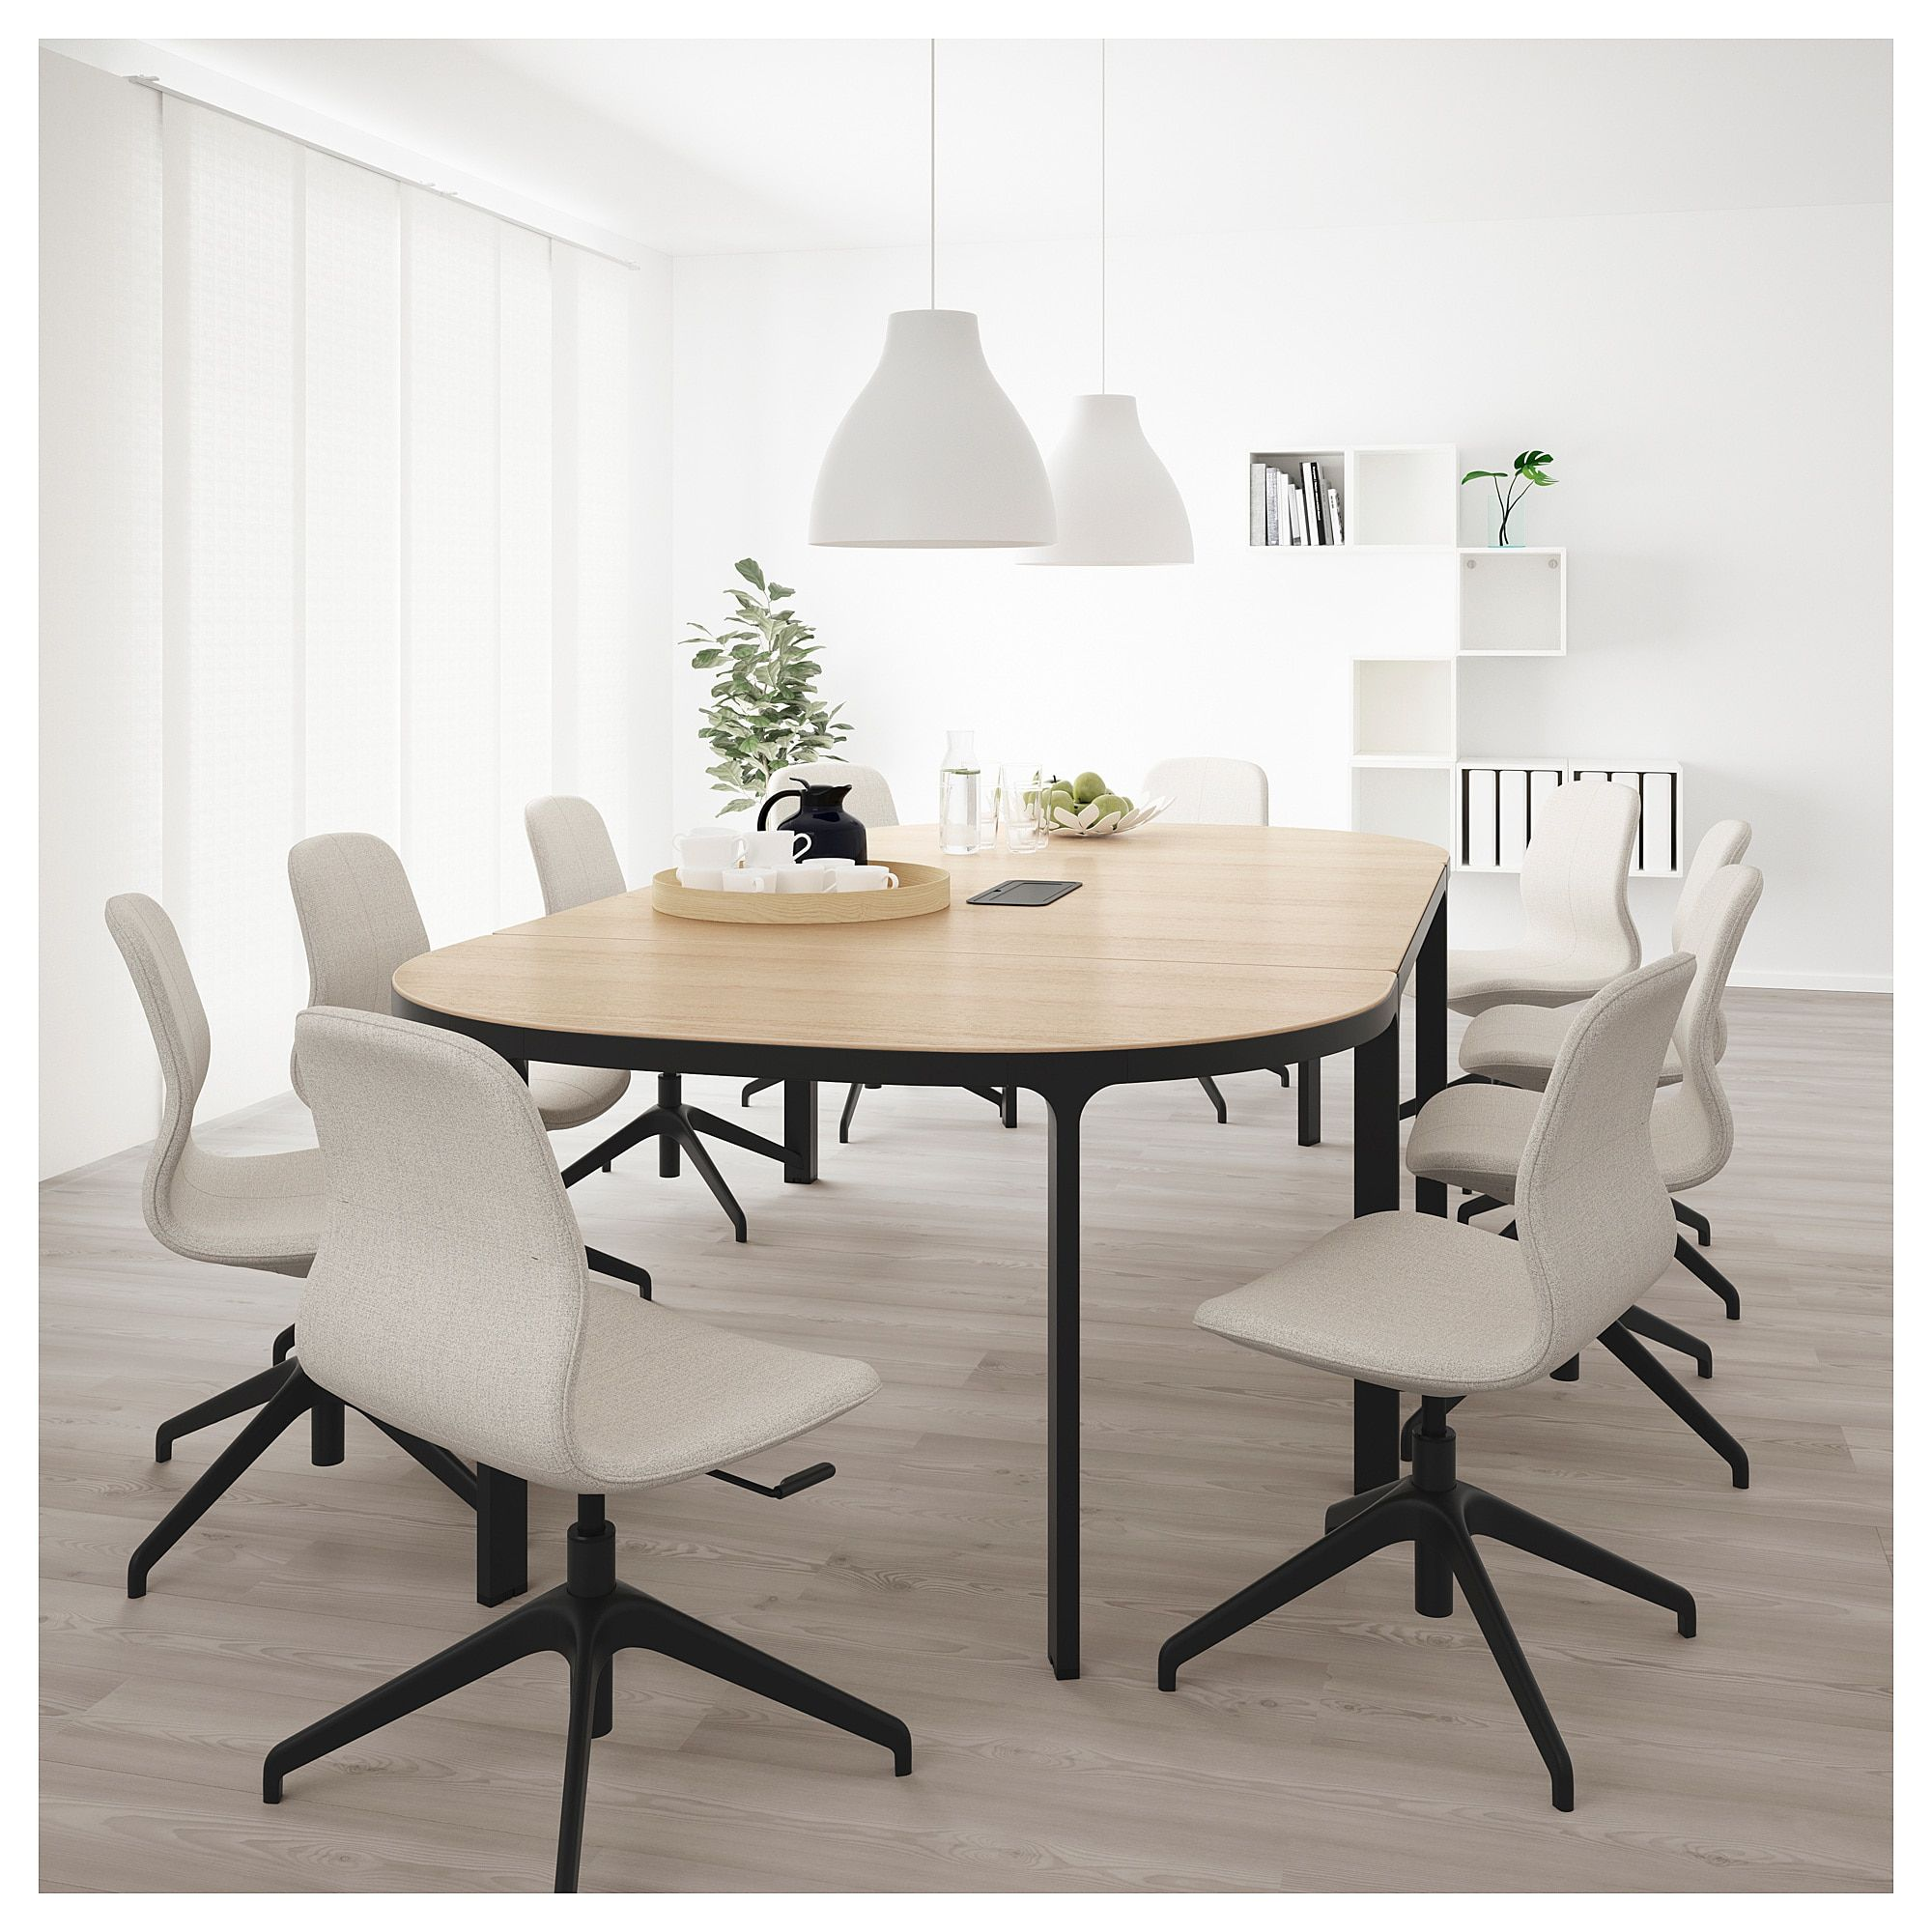 Conference Table Bekant White Stained Oak Veneer Black In 2019